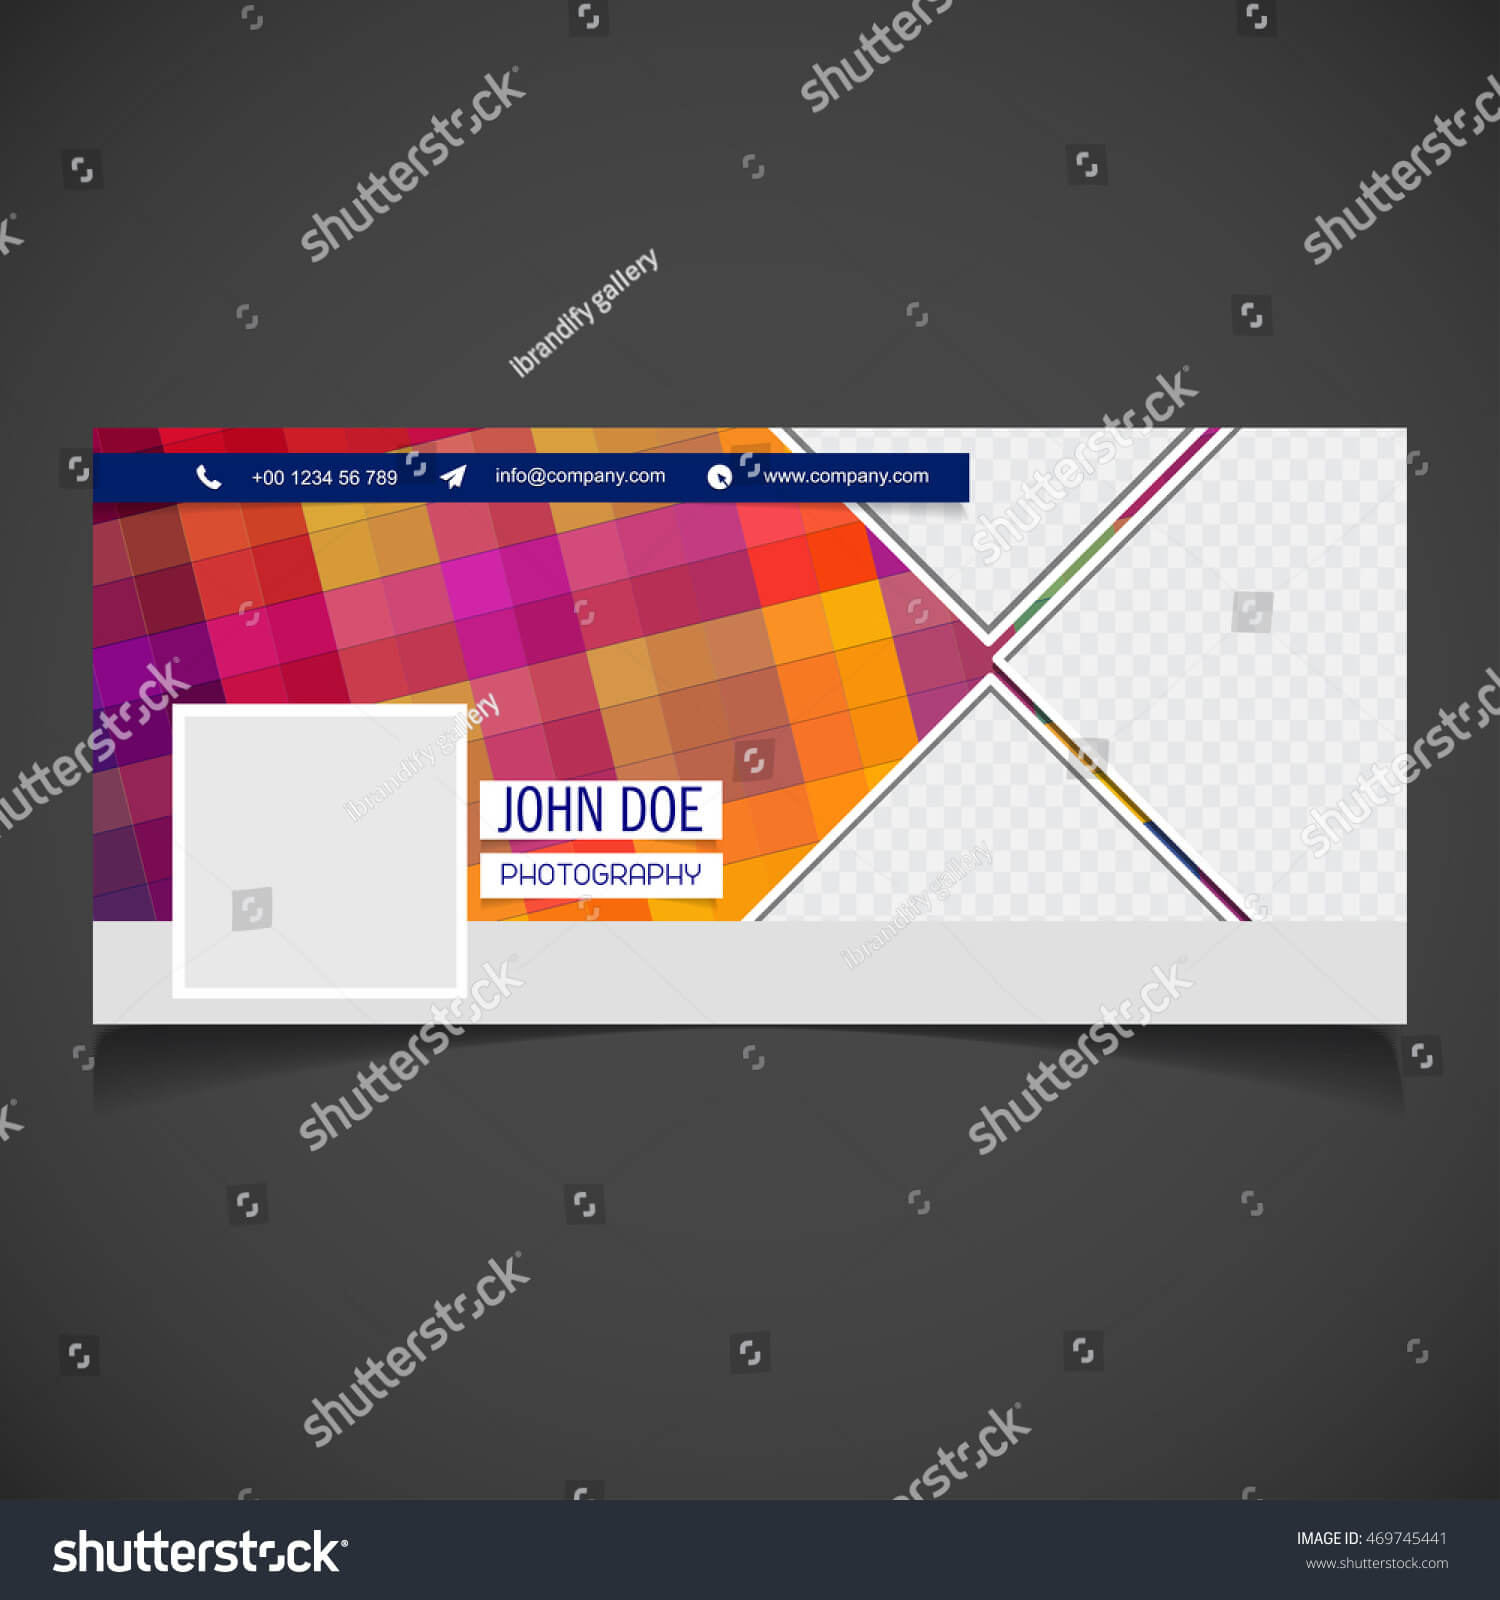 Creative Photography Banner Template Place Image Stock Intended For Photography Banner Template